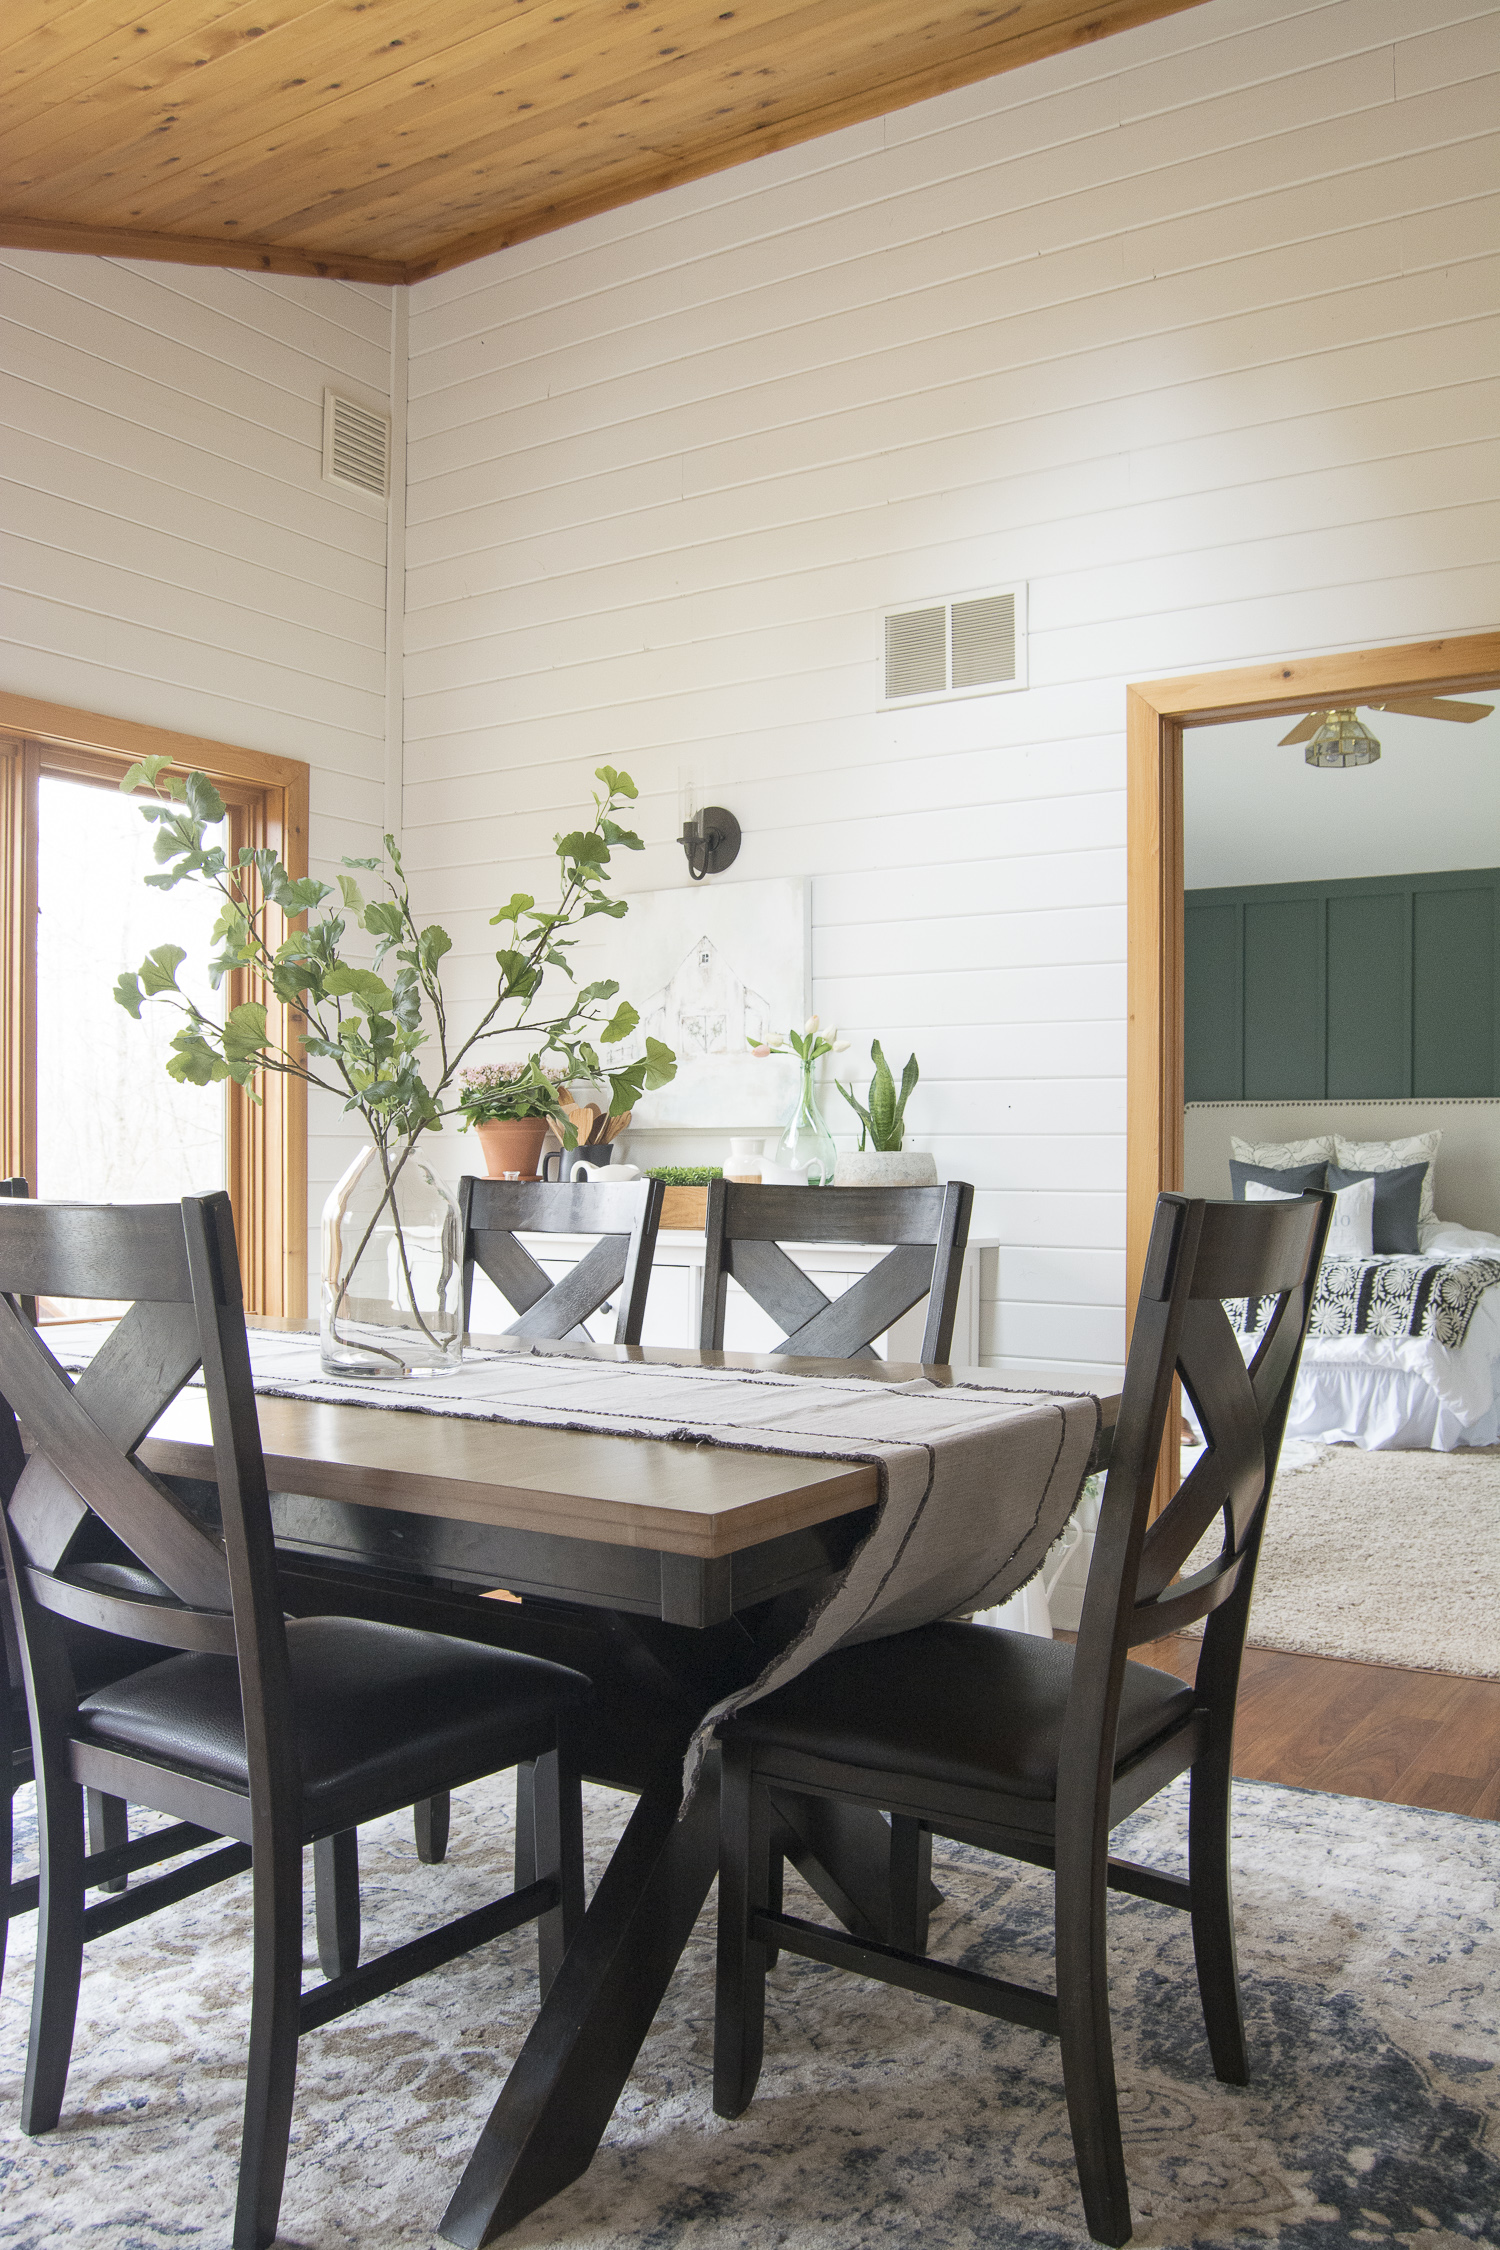 The gorgeous DIY barnwood wall makes this dining room a farmhouse dream